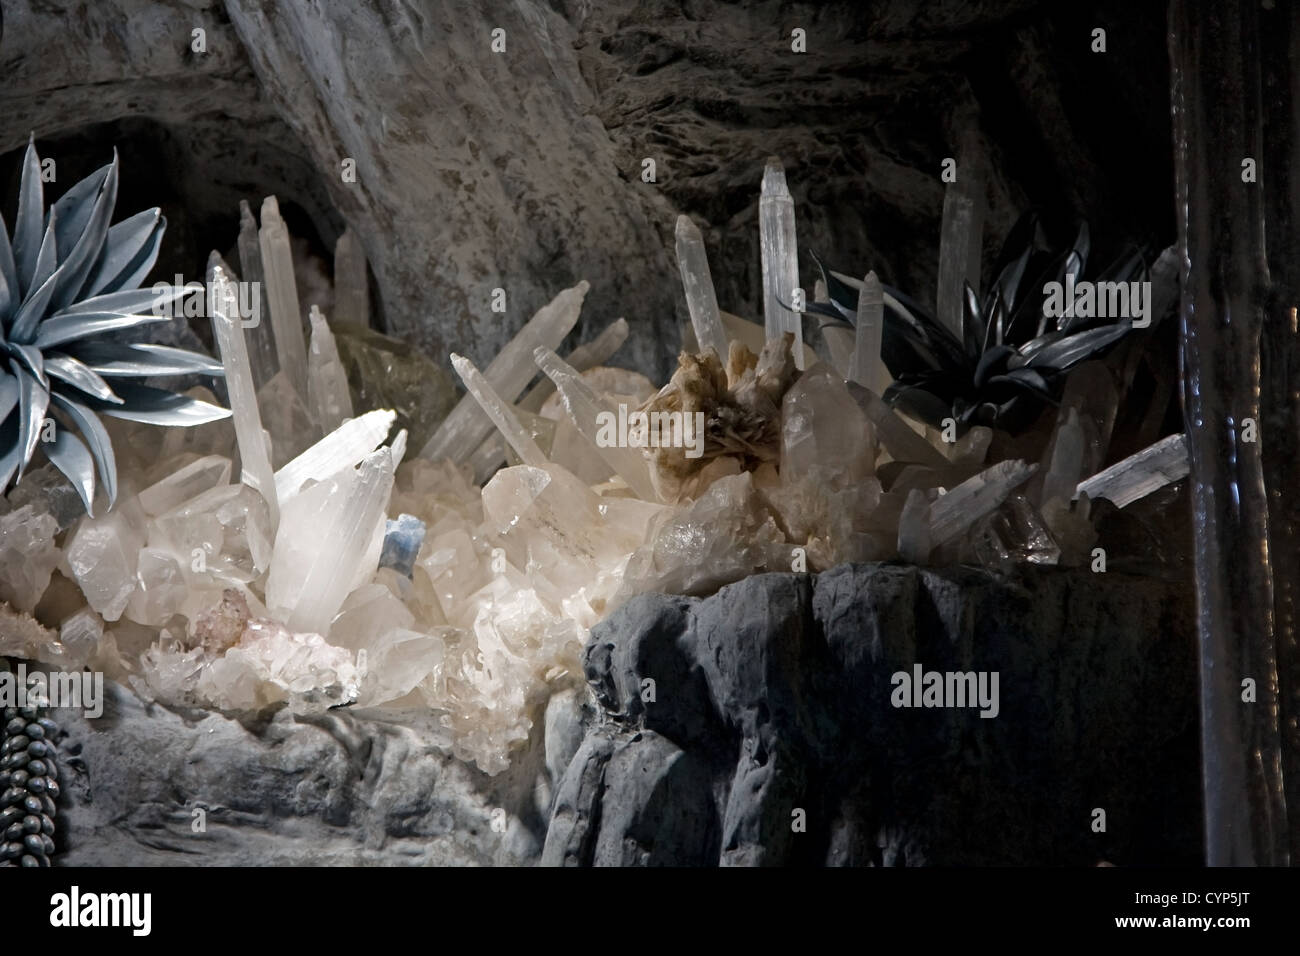 Underground cave with various crystel formations - Stock Image